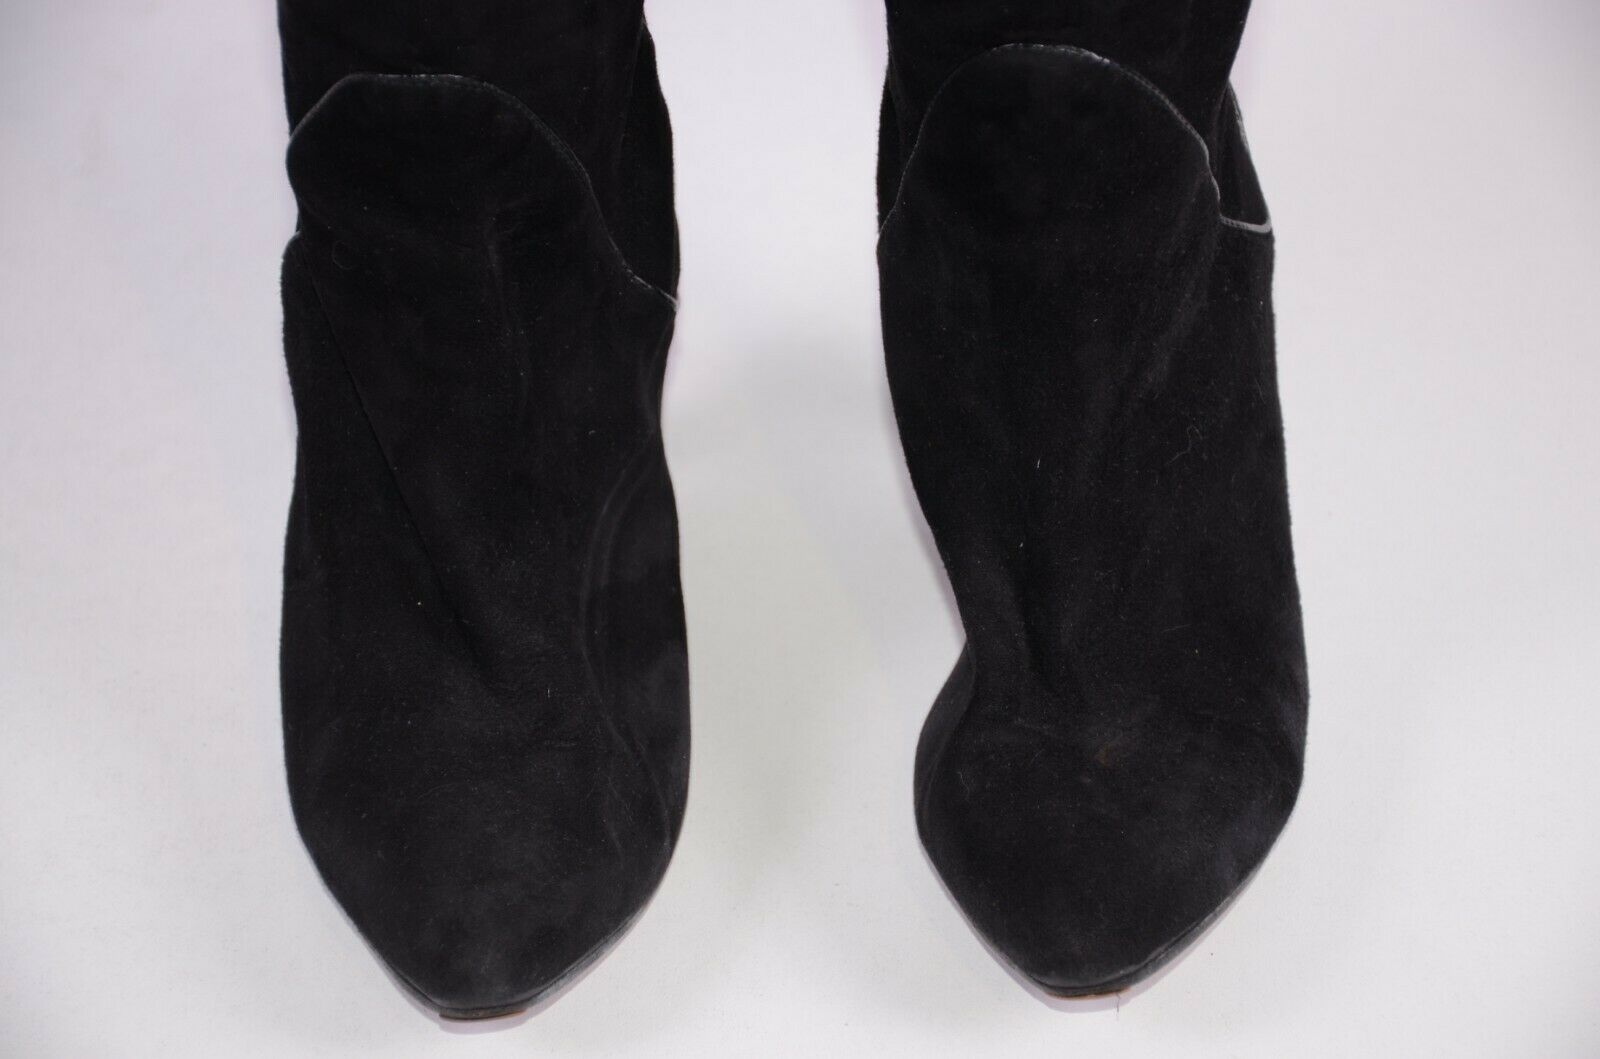 Unbranded Women's Thigh High Suede Boots Boots Boots Size 37  Black Kitten Heel 6.5 US 291c5d